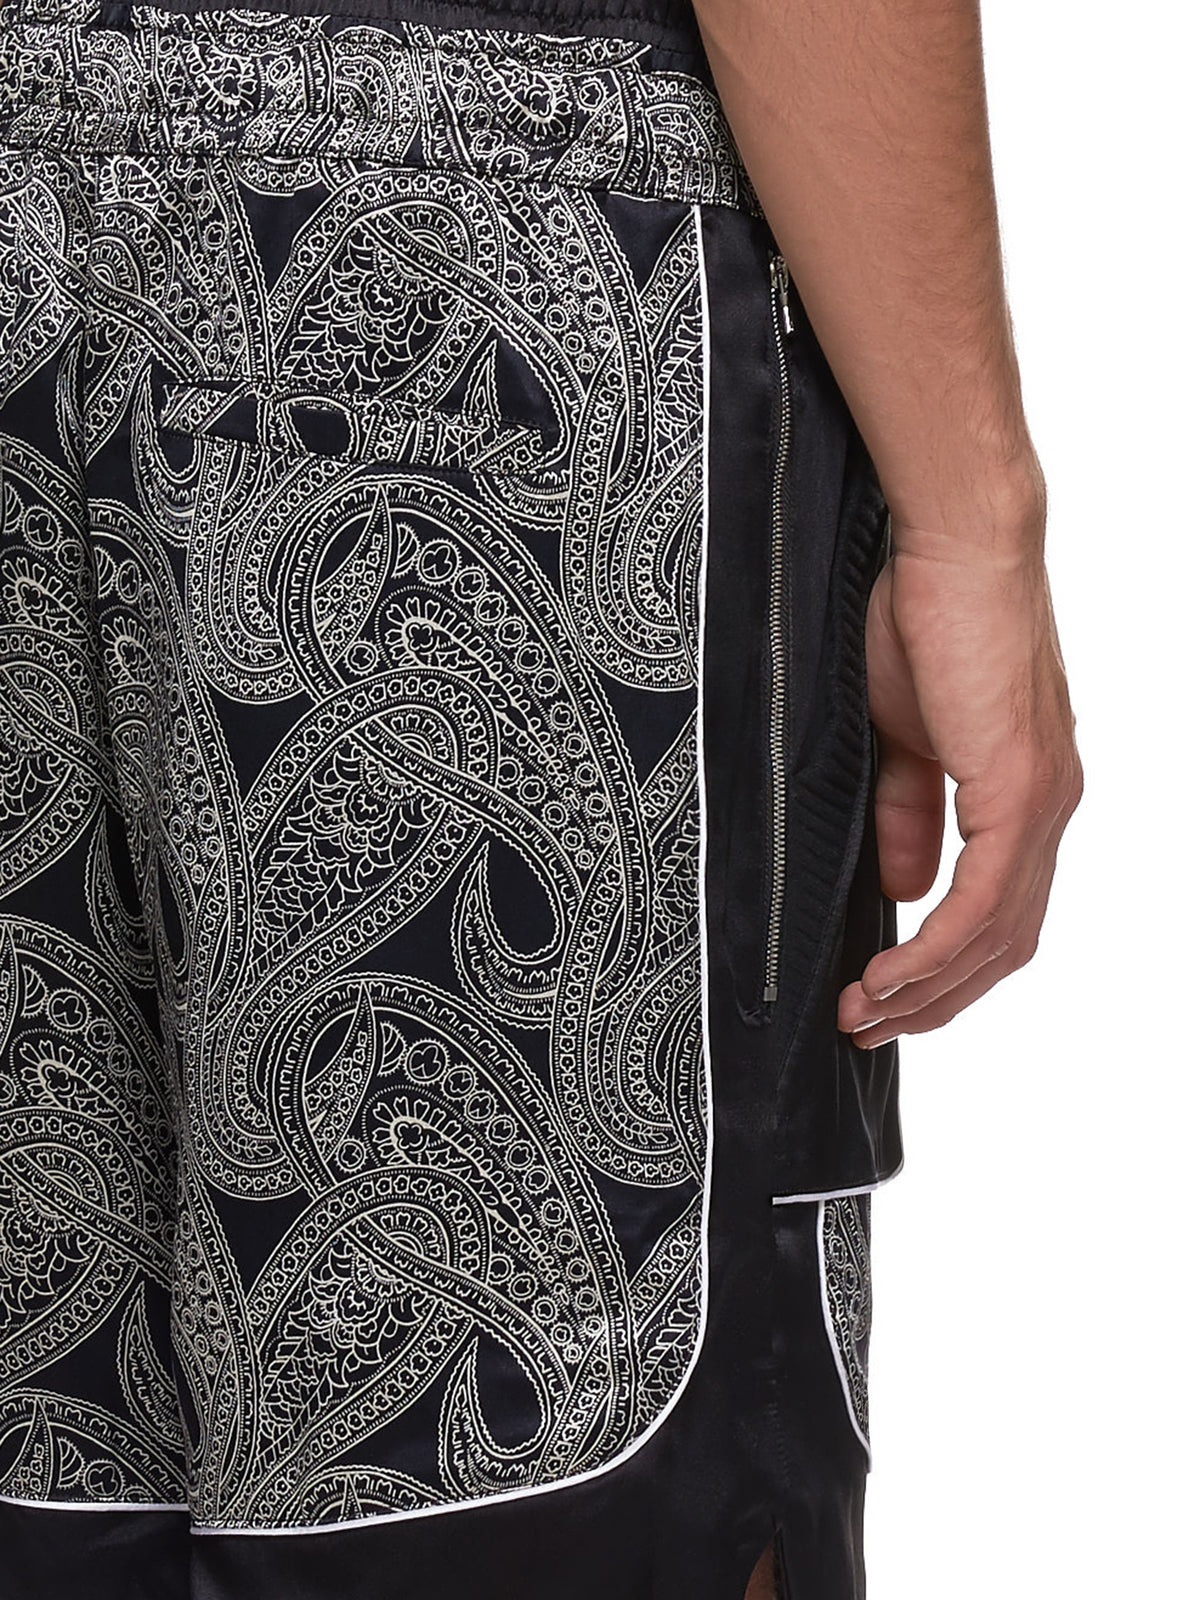 Courtside Shorts (COURTSIDE-SHORT-BLK-PAISLEY)